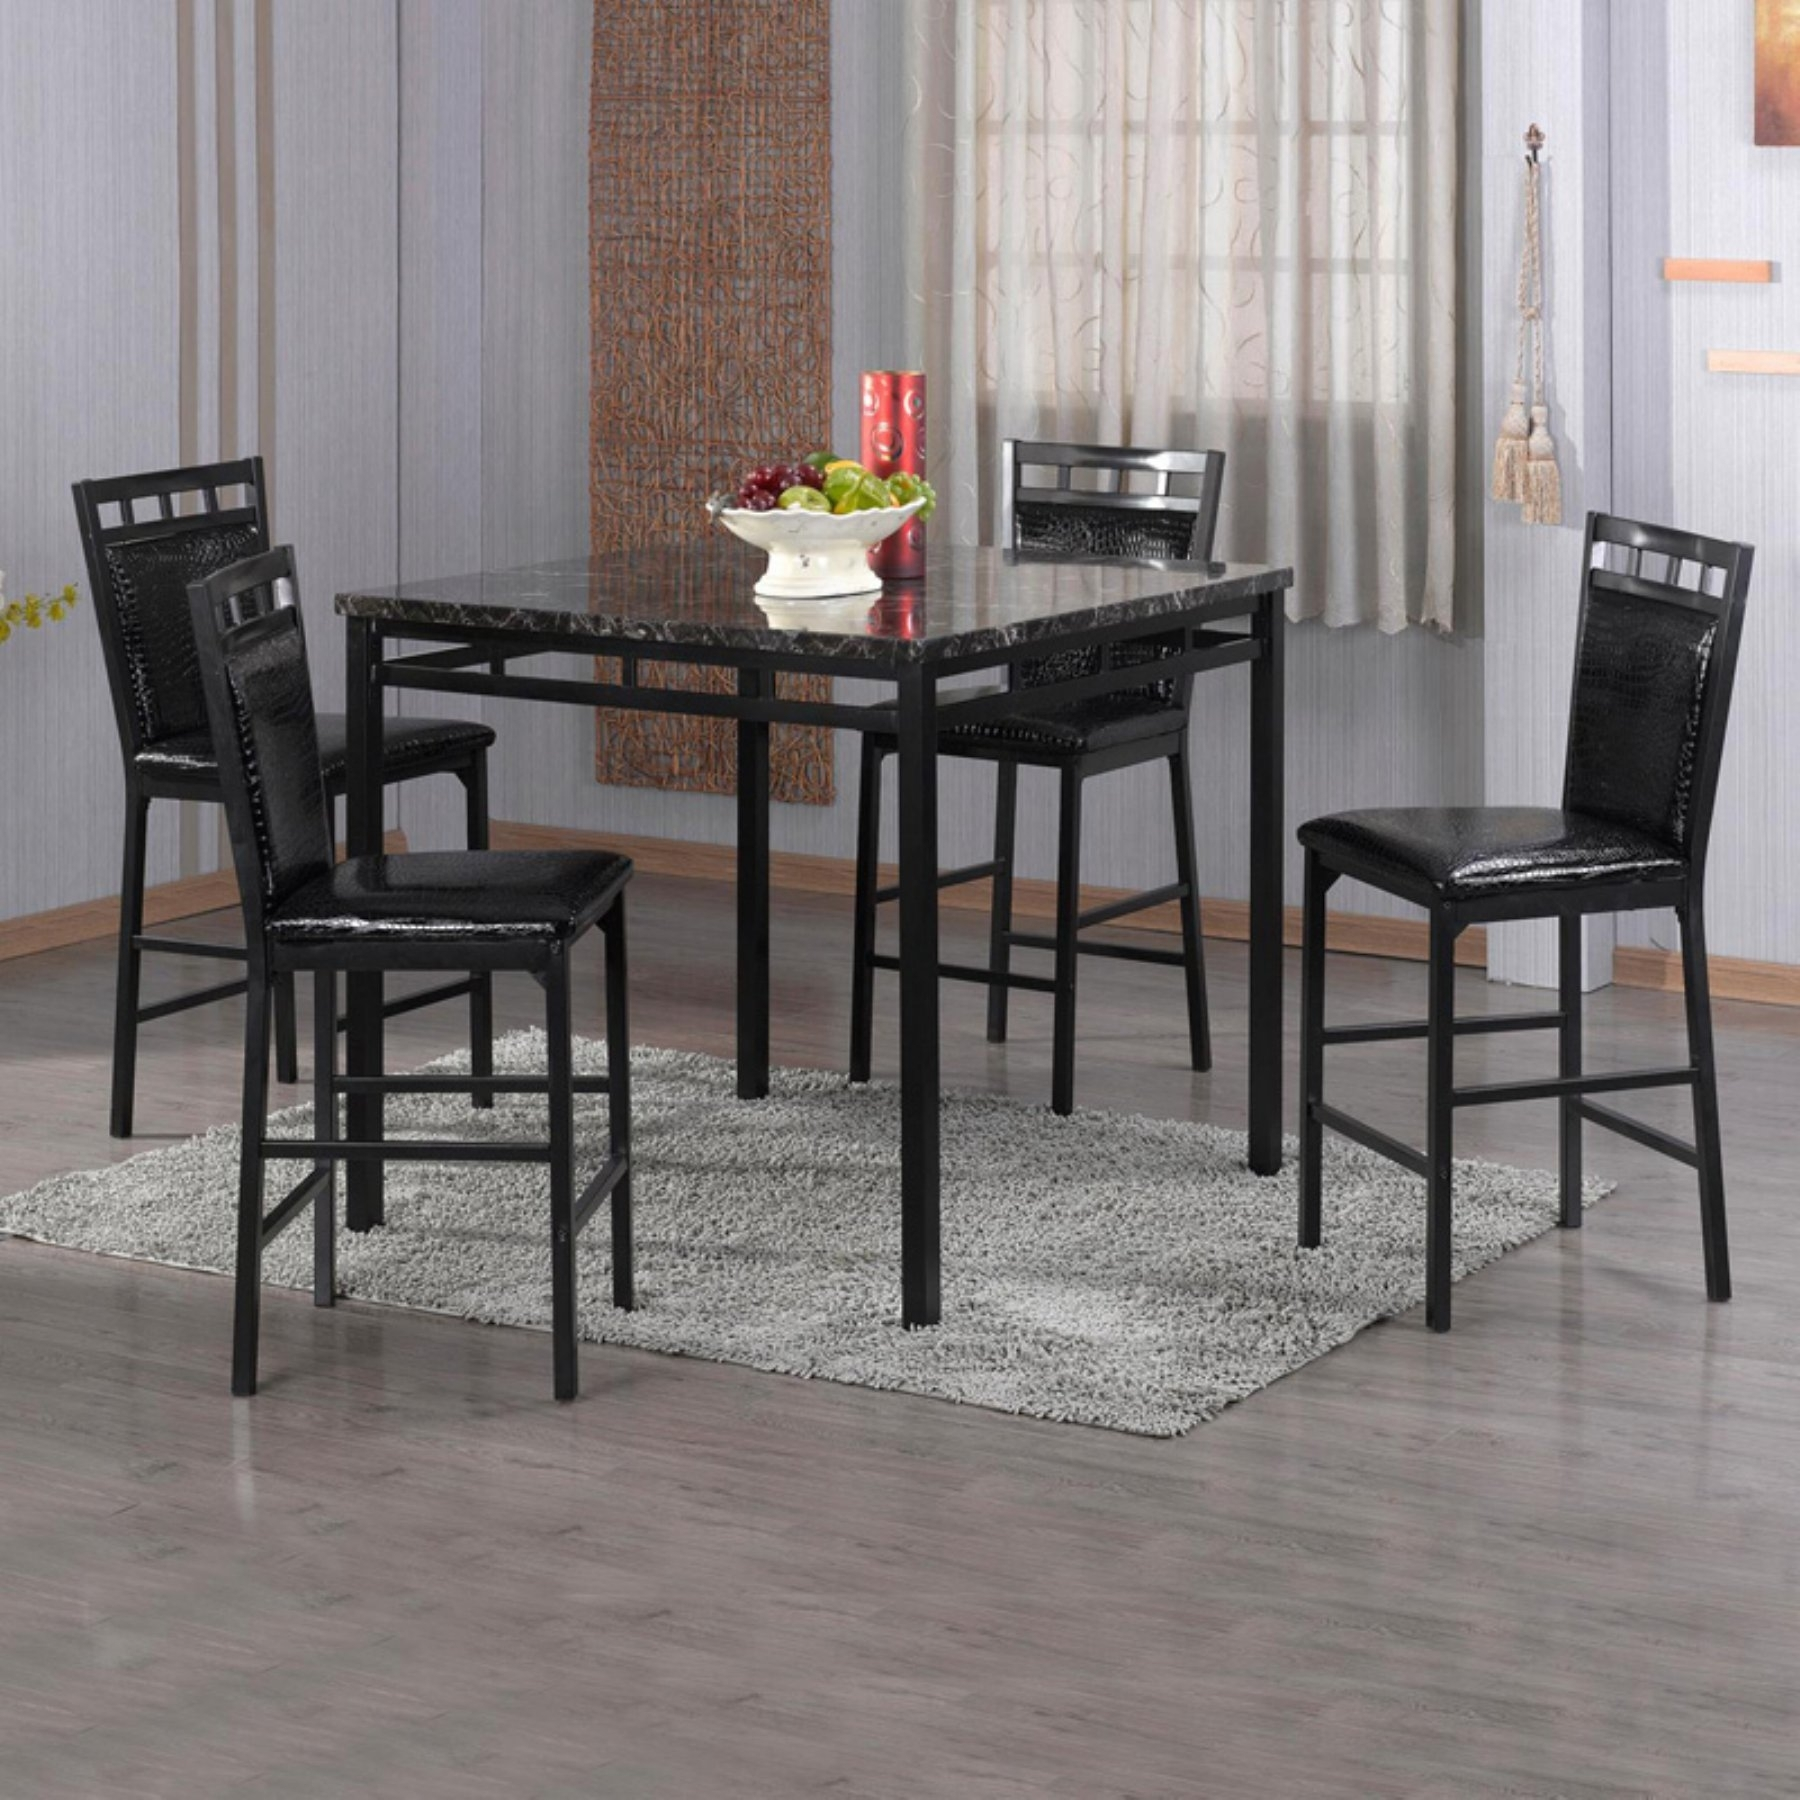 Rooms To Go Dining Sets: 20+ Valencia 5 Piece Round Dining Sets With Uph Seat Side